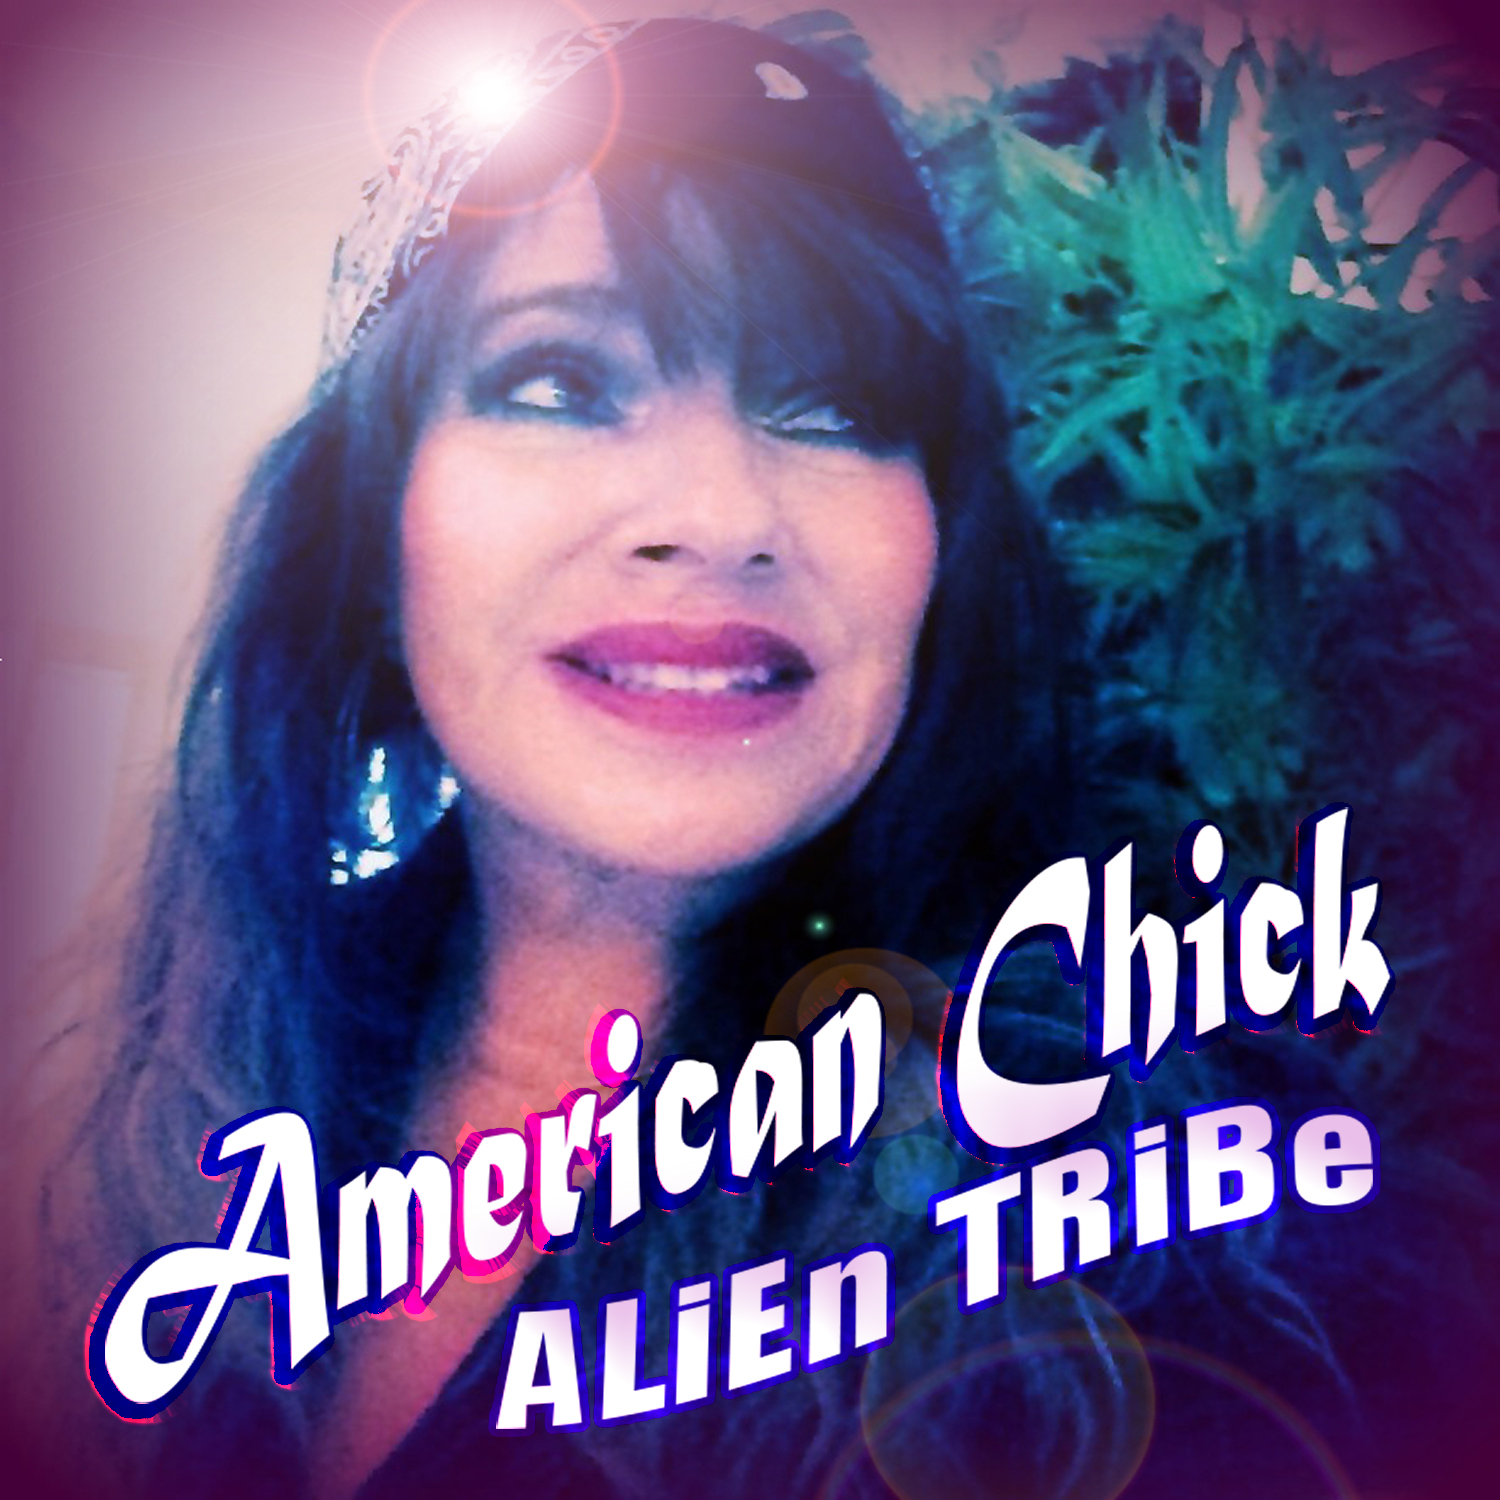 American Chick electronic music by Alien Tribe